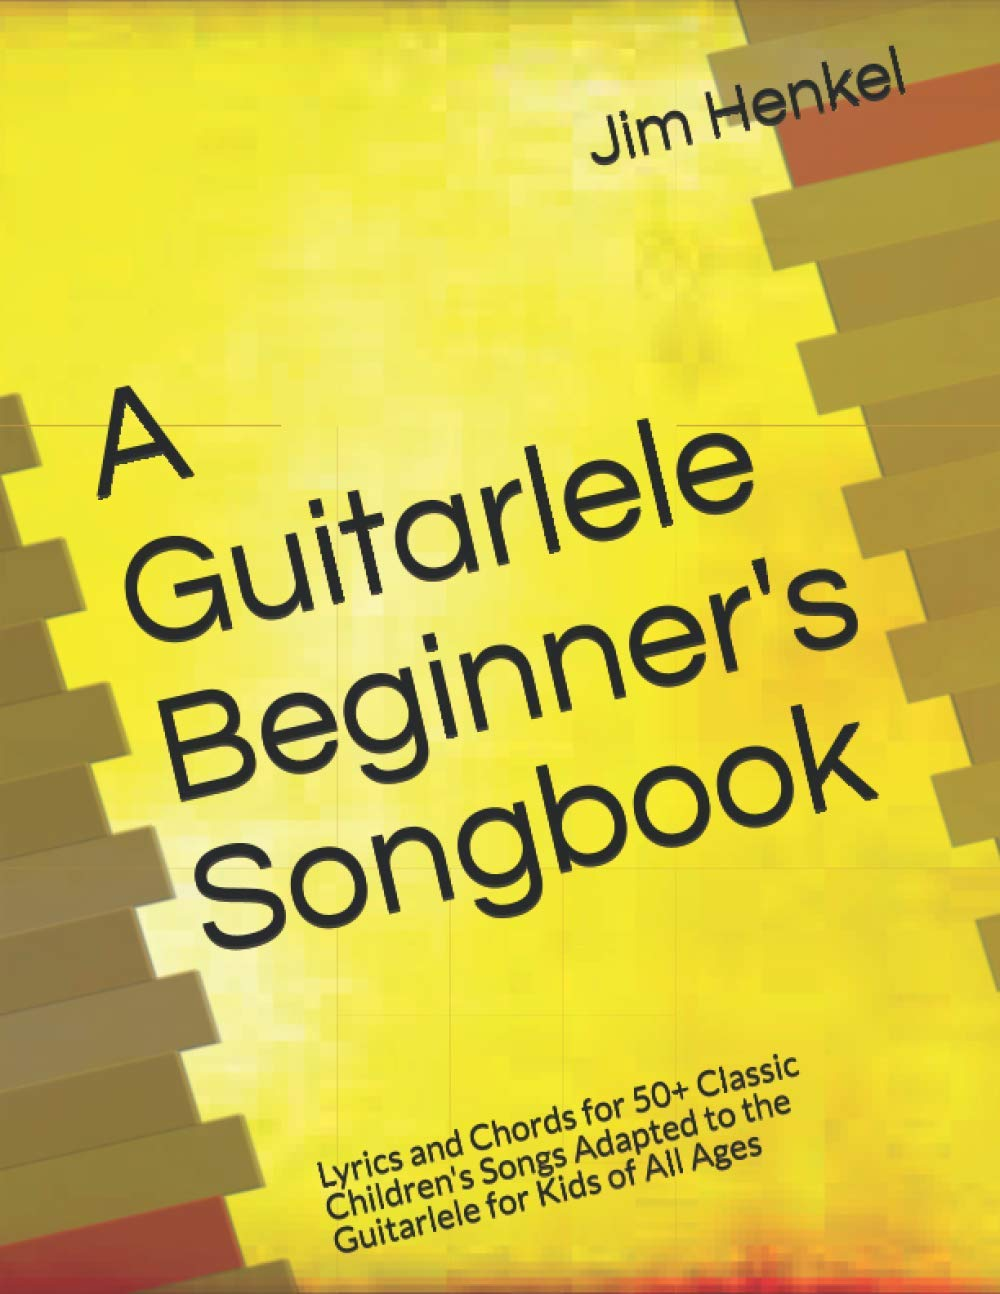 Guitarlele Beginner's Songbook: Lyrics and Chords for 50+ Classic Children's Songs